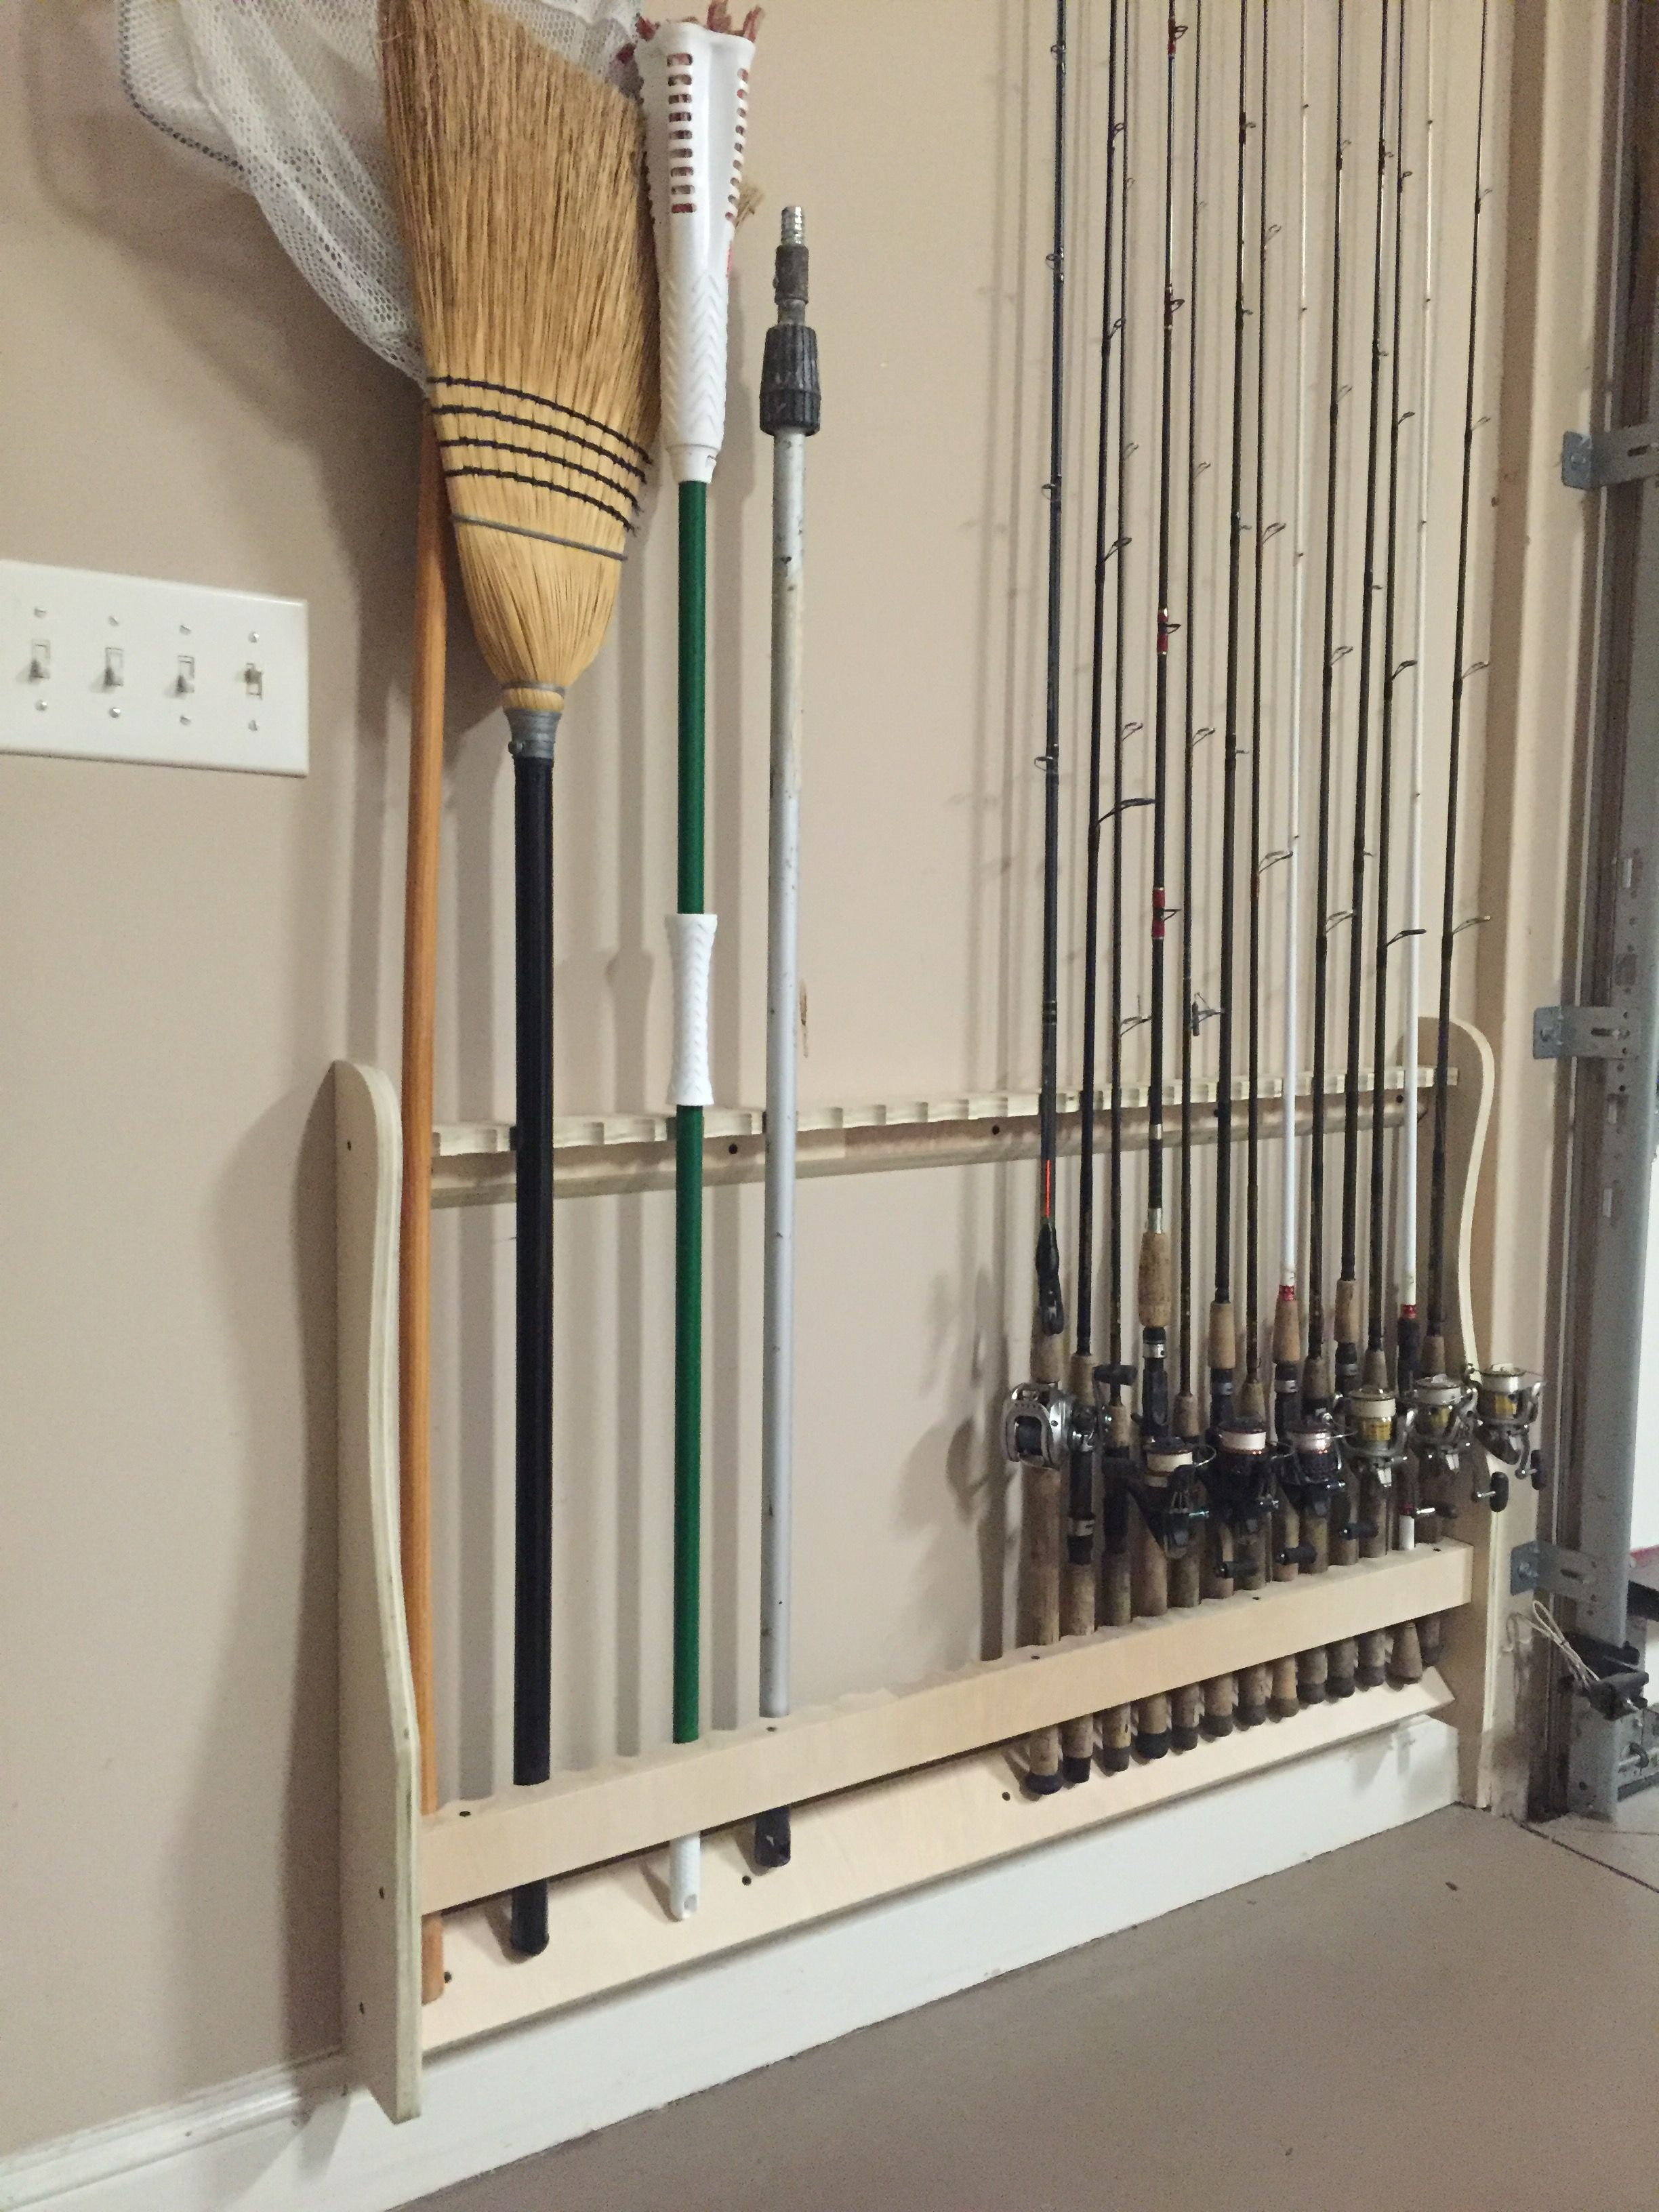 wall mounted rod rack vertical get organized built by rods rest fishing rod racks. Black Bedroom Furniture Sets. Home Design Ideas